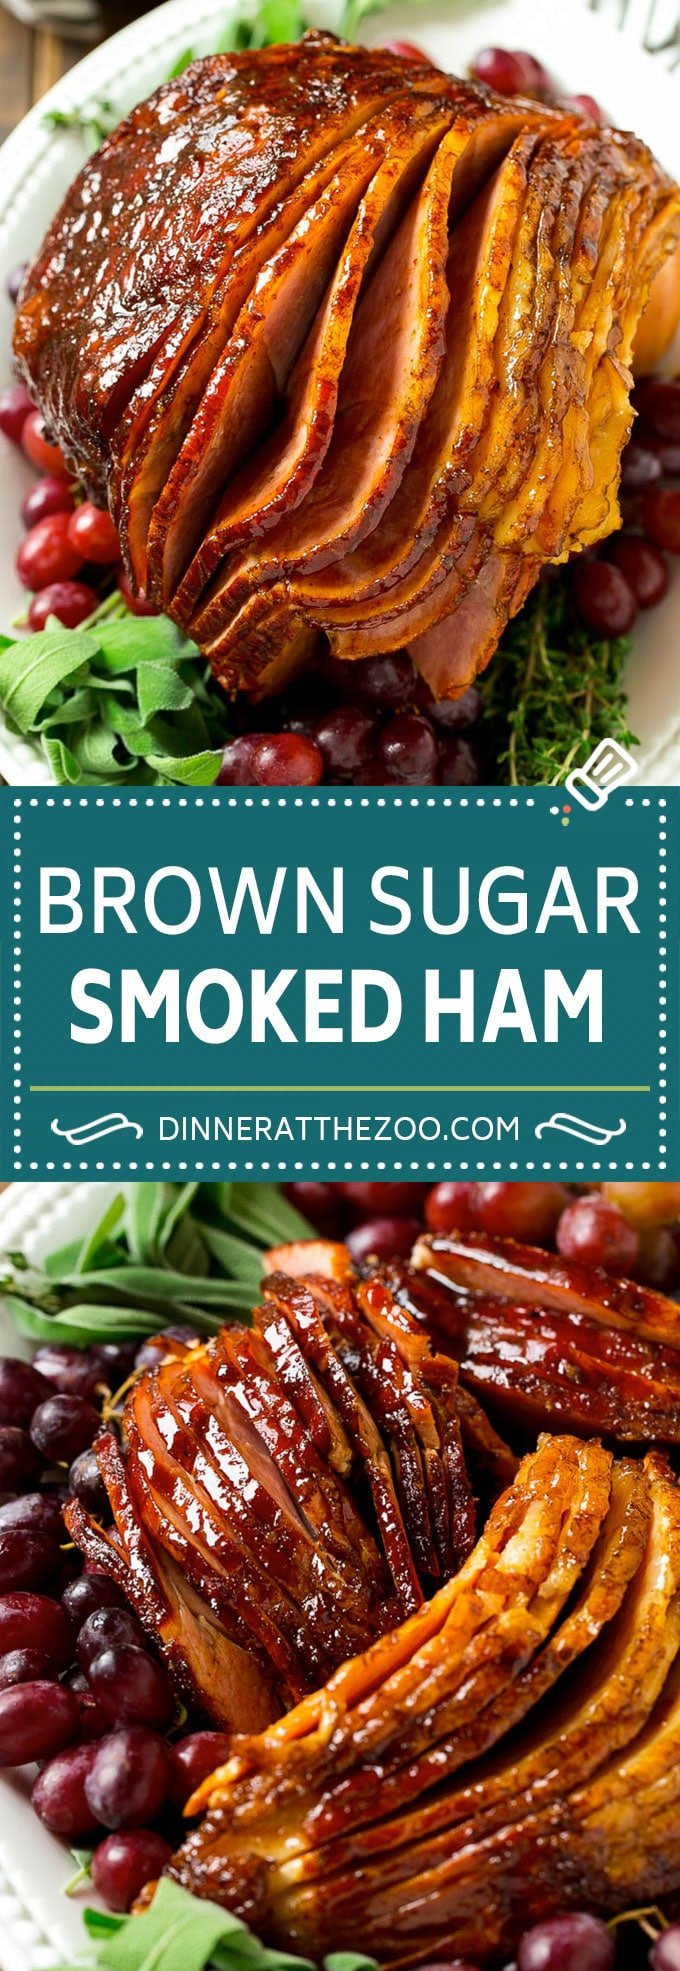 Brown Sugar Smoked Ham Recipe | Holiday Ham Recipe | Brown Sugar Glazed Ham #ham #christmas #thanksgiving #easter #smoker #dinner #brownsugar #dinneratthezoo #glutenfree